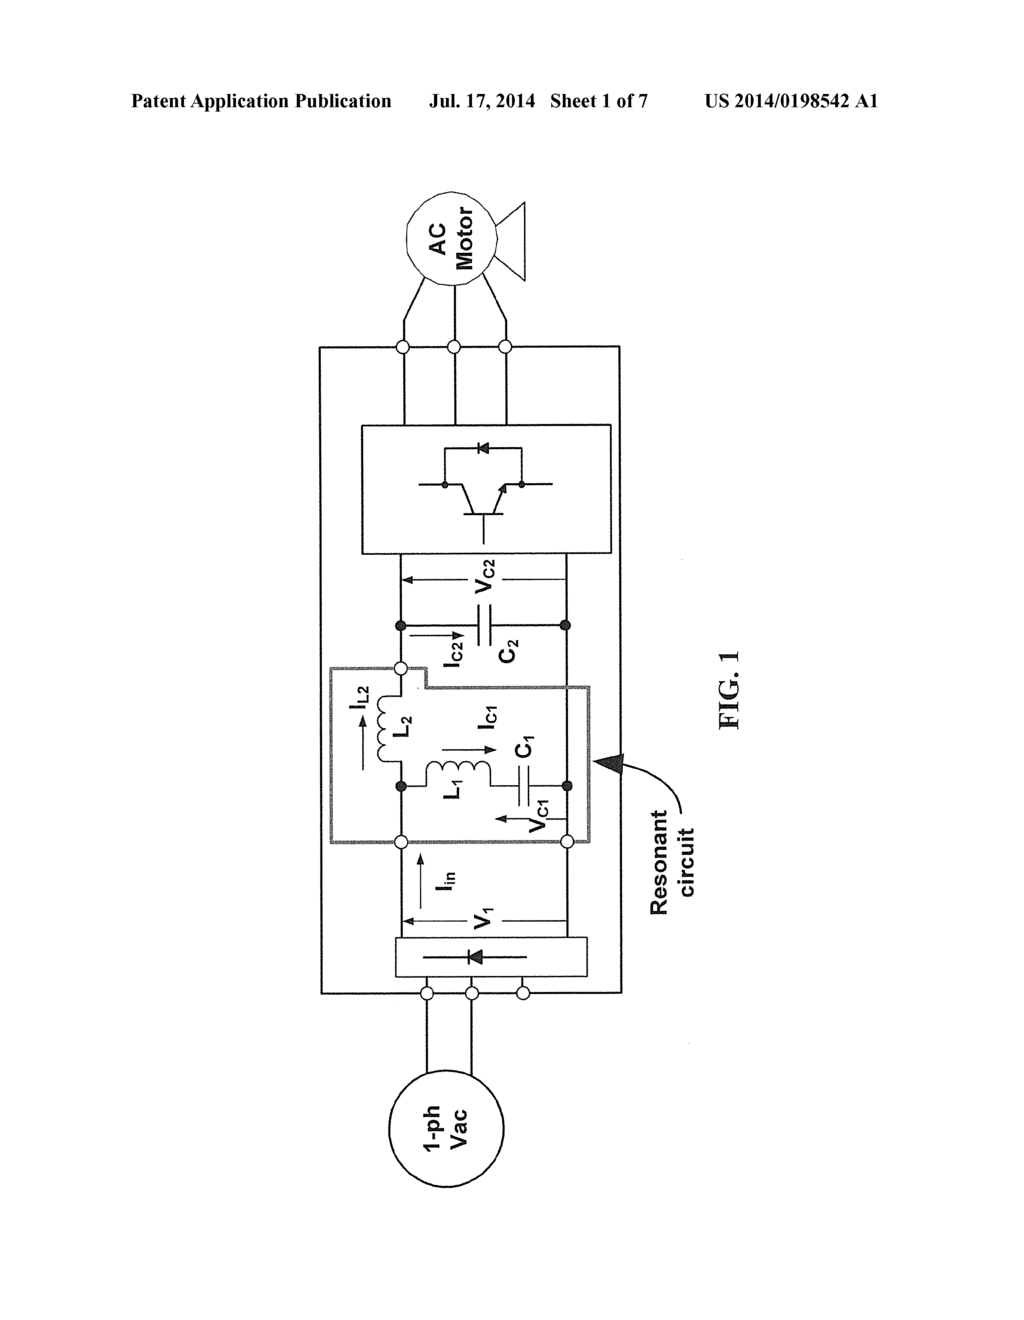 SINGLE-PHASE ACTIVE FRONT END RECTIFIER SYSTEM FOR USE WITH THREE